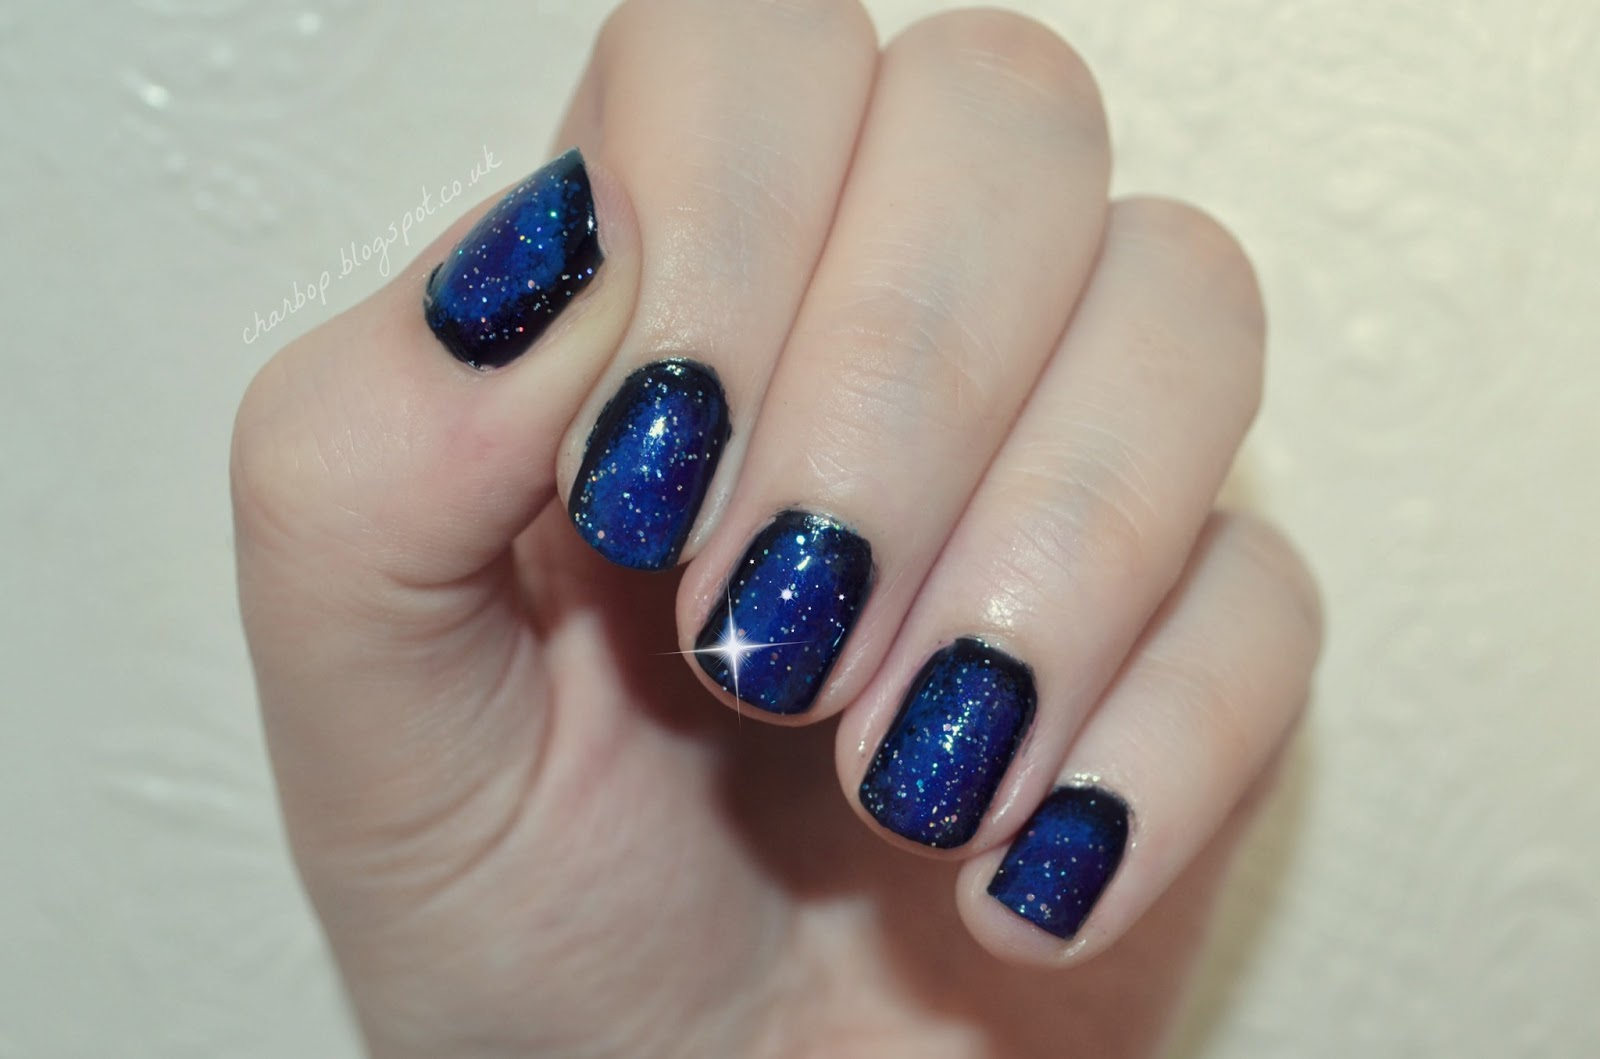 Where is my mind?: To infinity and beyond! Galaxy nail art...